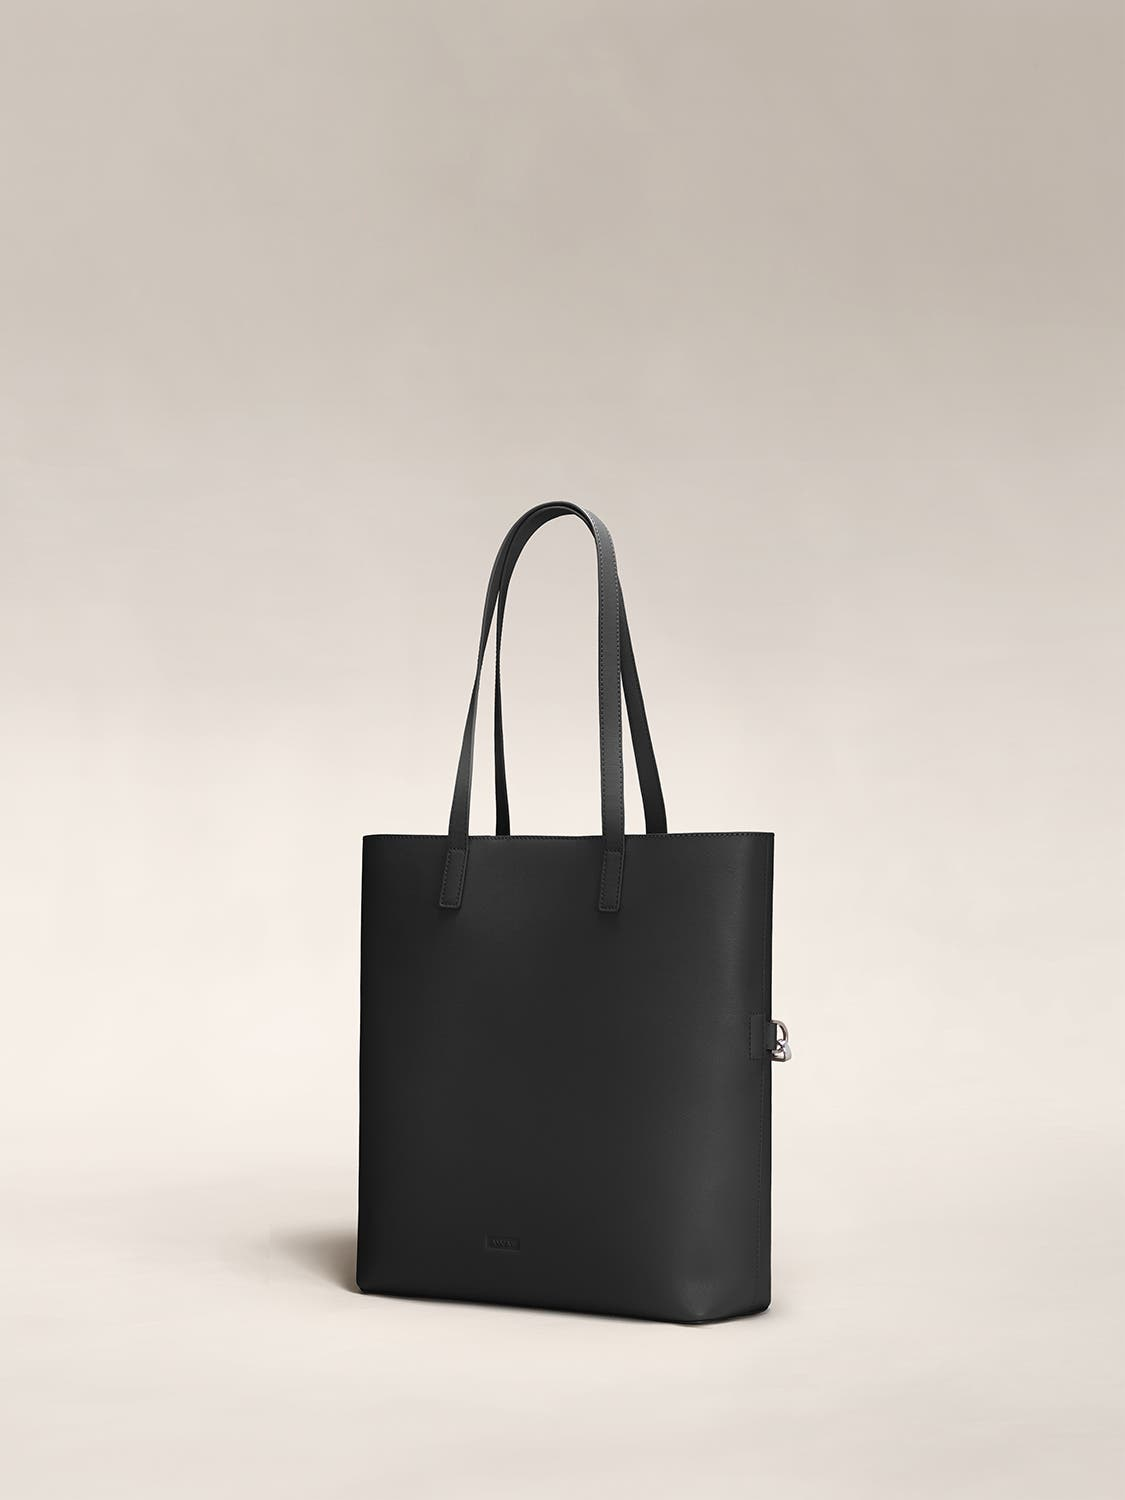 Angled view of a black leather tote travel bag in leather.